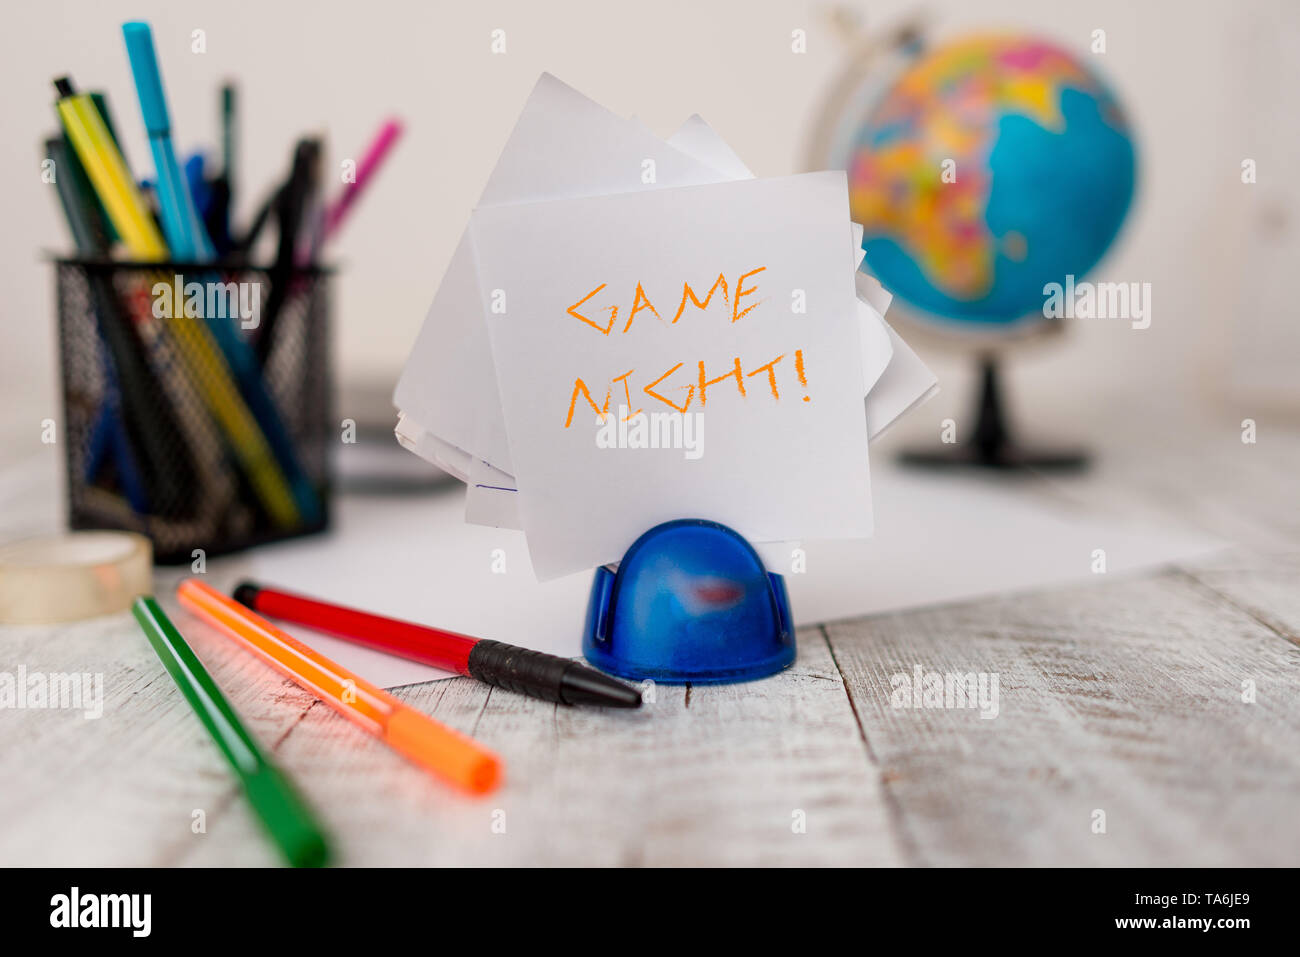 Text sign showing Game Night. Business photo showcasing usually its called on adult play dates like poker with friends Stationary plus pens and papers - Stock Image